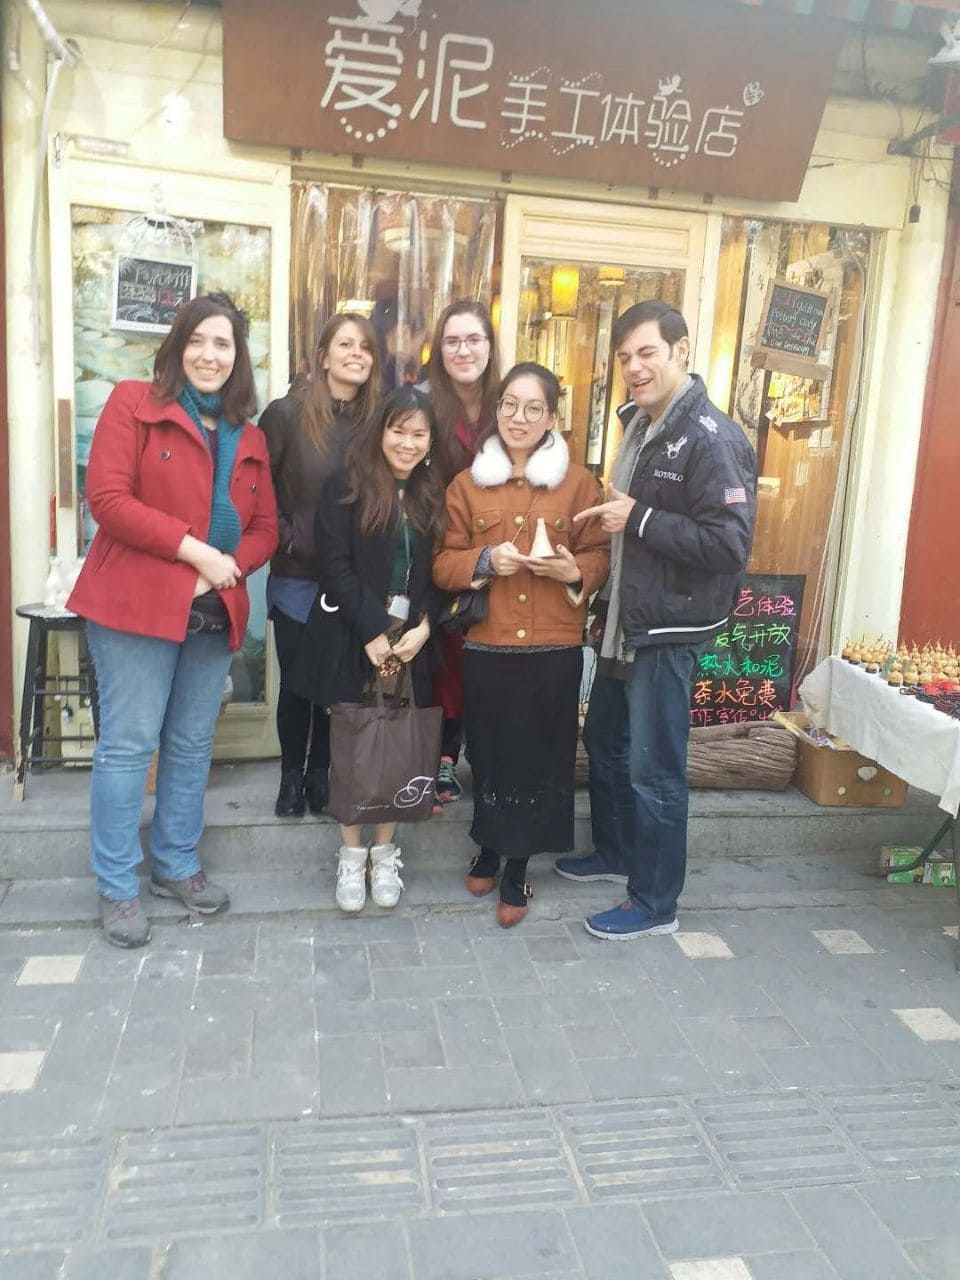 Alana with friends, outside a small restaurant in Beijing